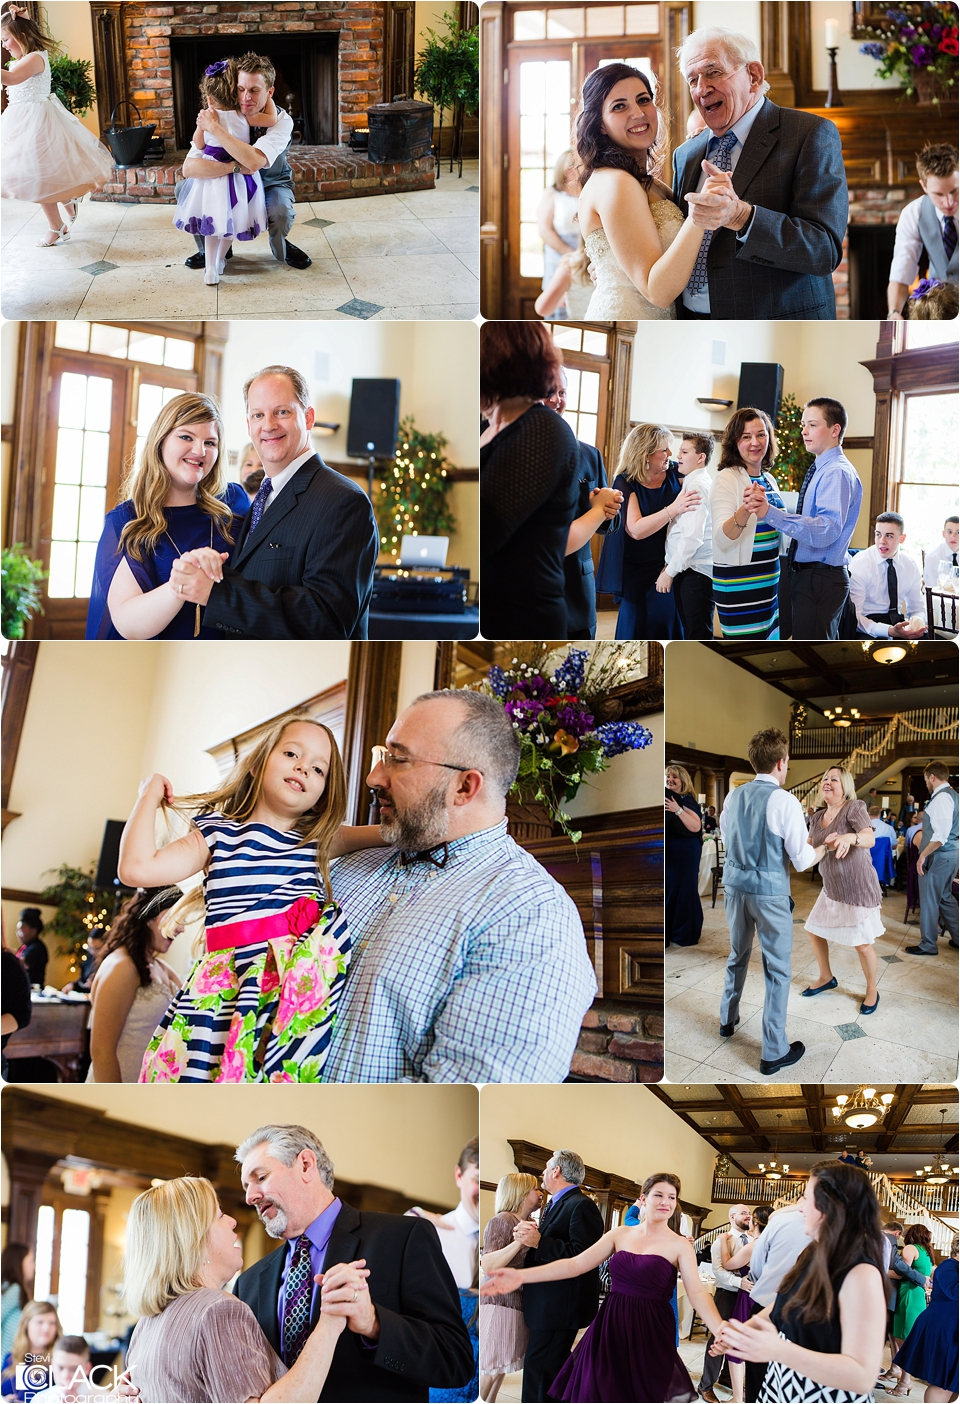 Atlanta weddingPhotographer_2312.jpg